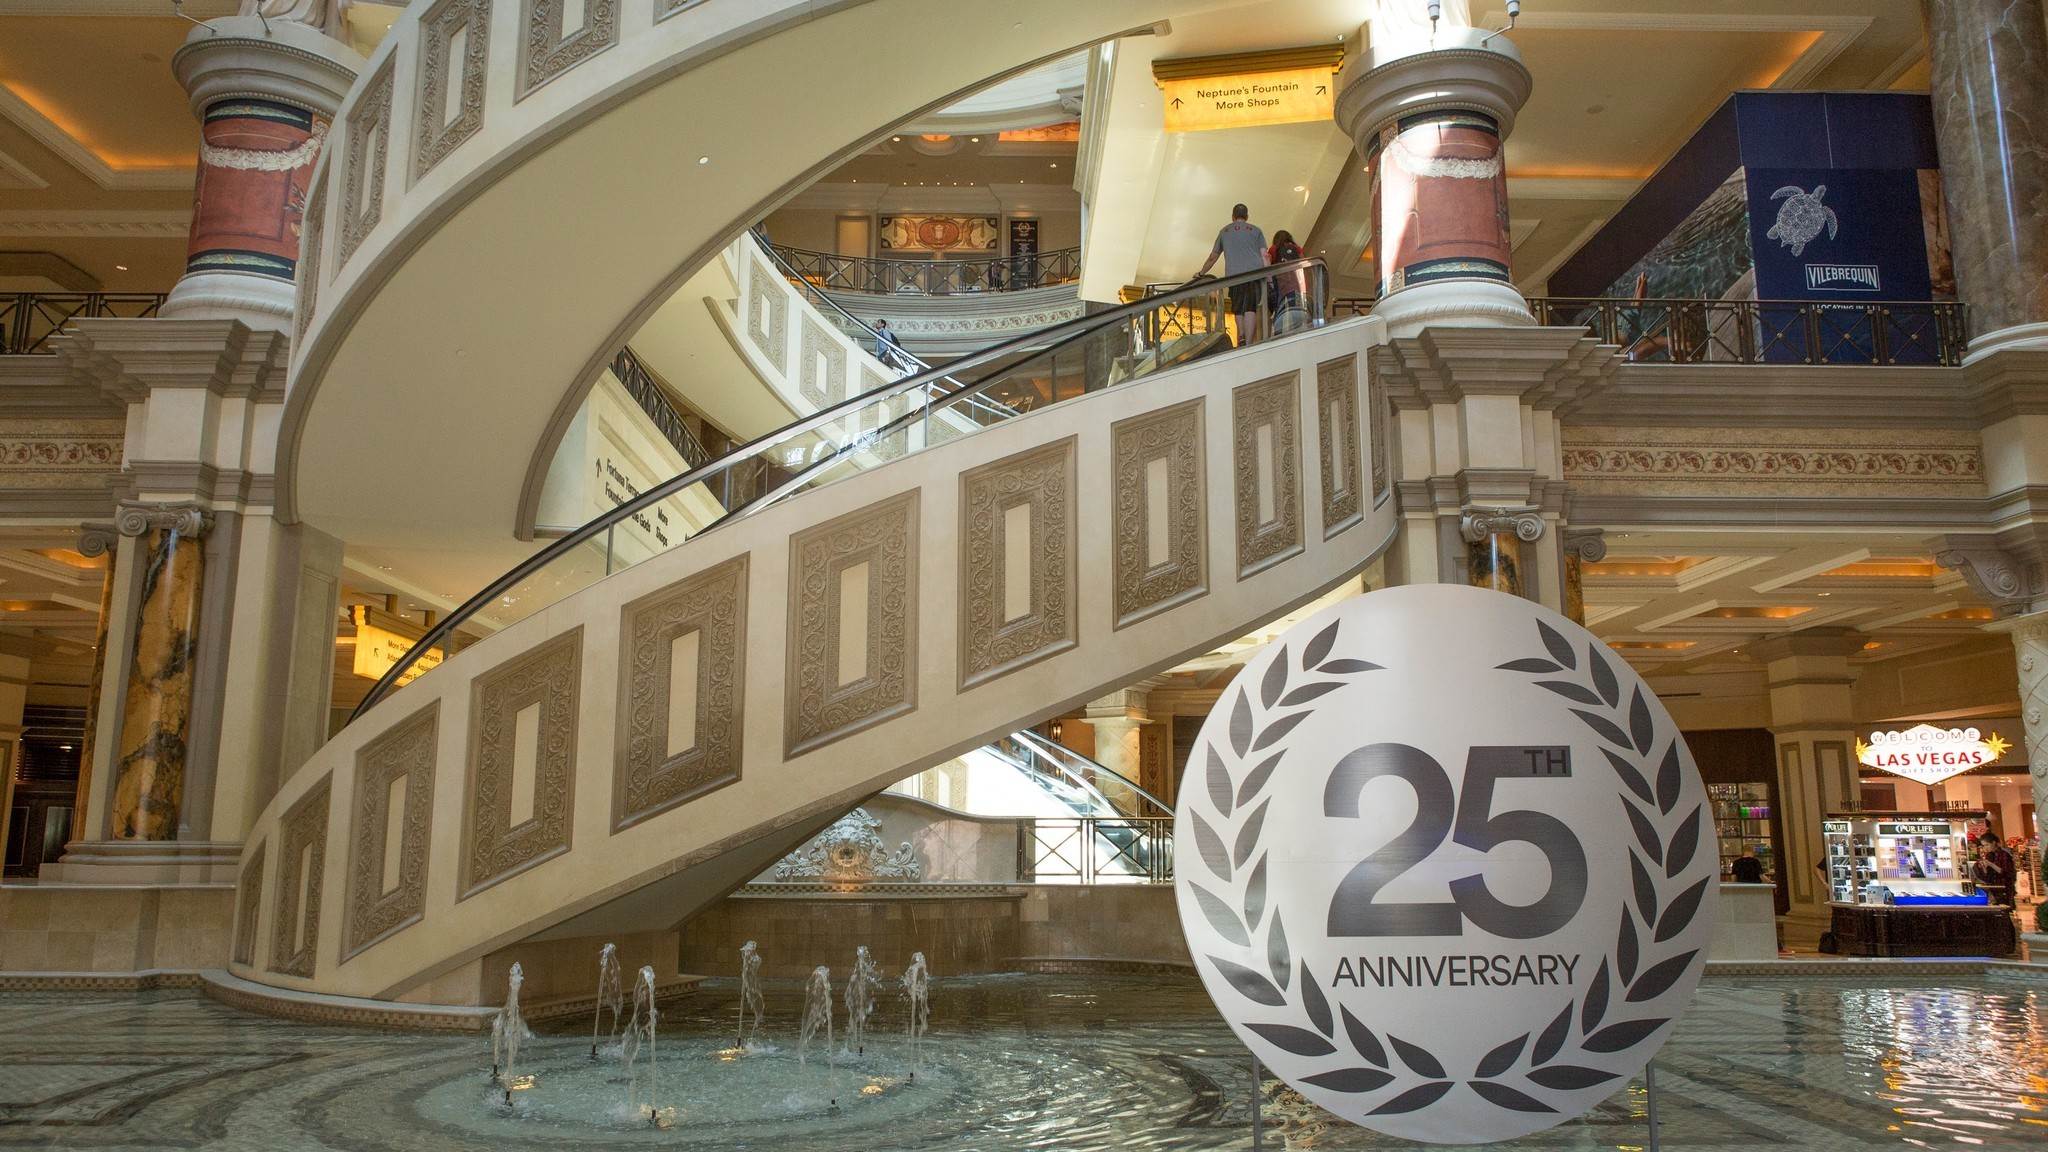 The three-story spiral escalator at the Forum Shops is the only conveyance of its kind in Las Vegas. People lined up to ride it following its launch in October 2004.